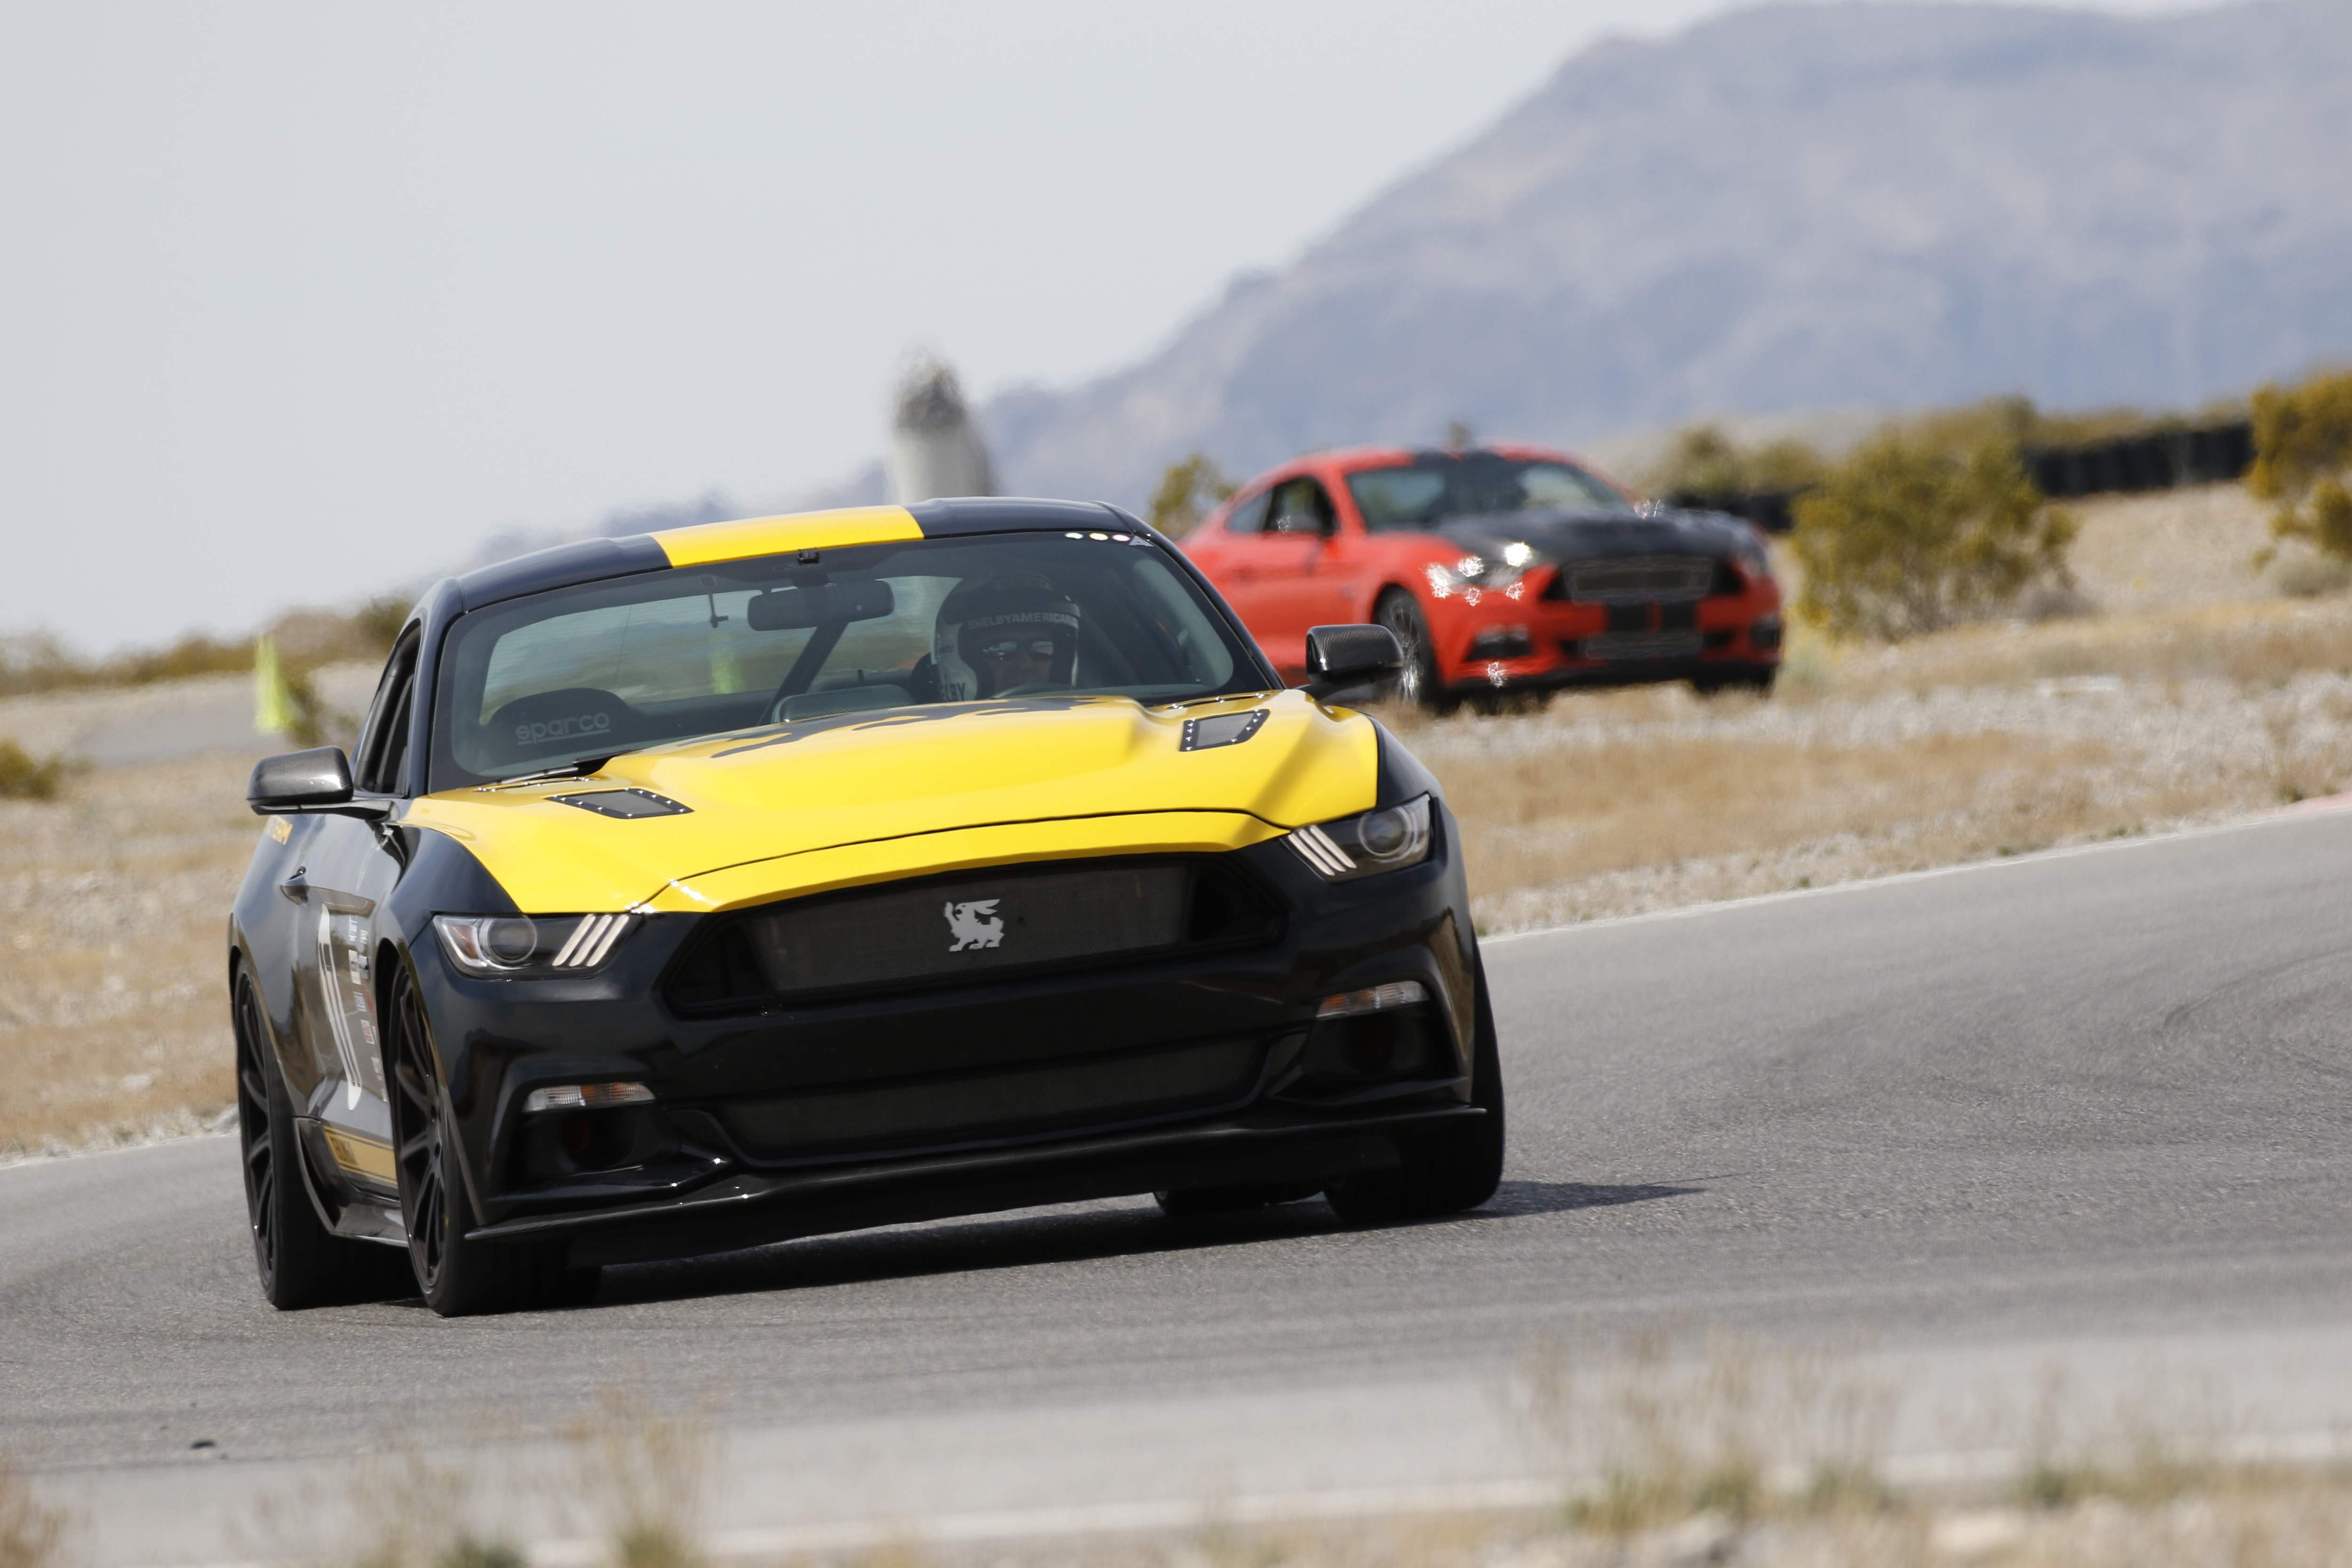 5 2016 Ford Mustang Front View Racing